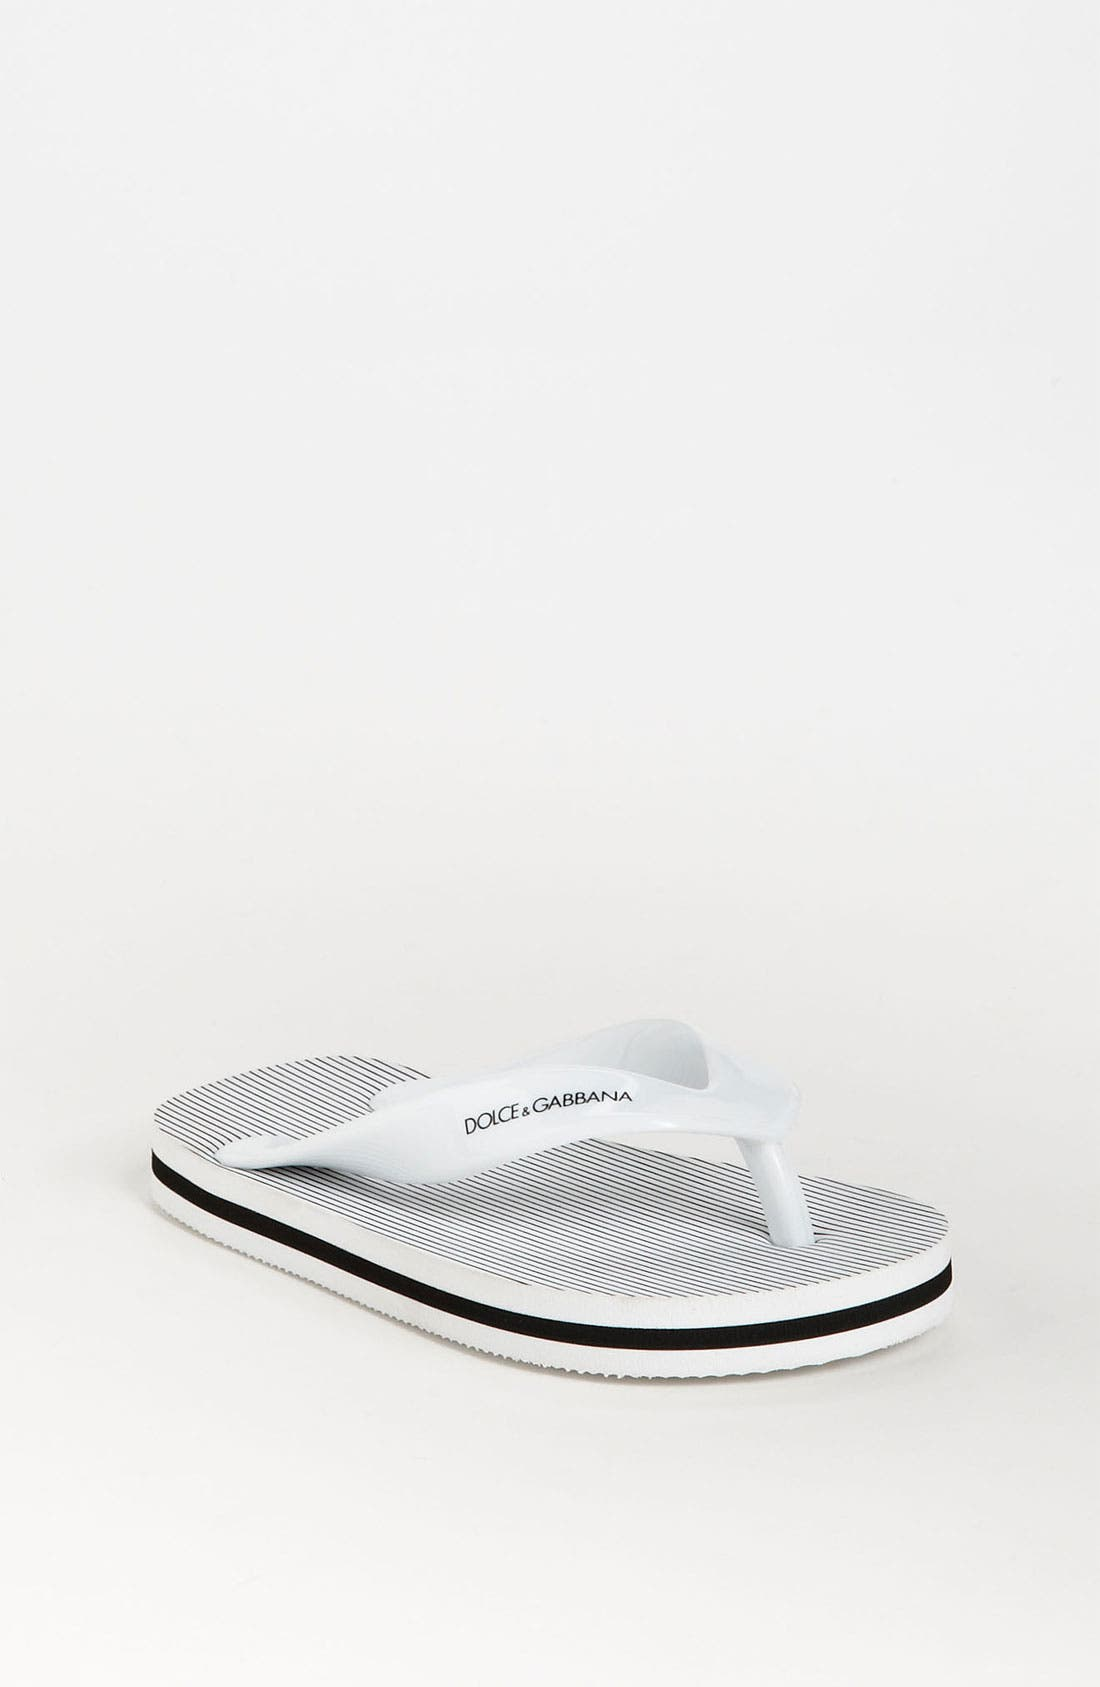 Alternate Image 1 Selected - Dolce&Gabbana Flip Flop (Toddler, Little Kid & Big Kid)